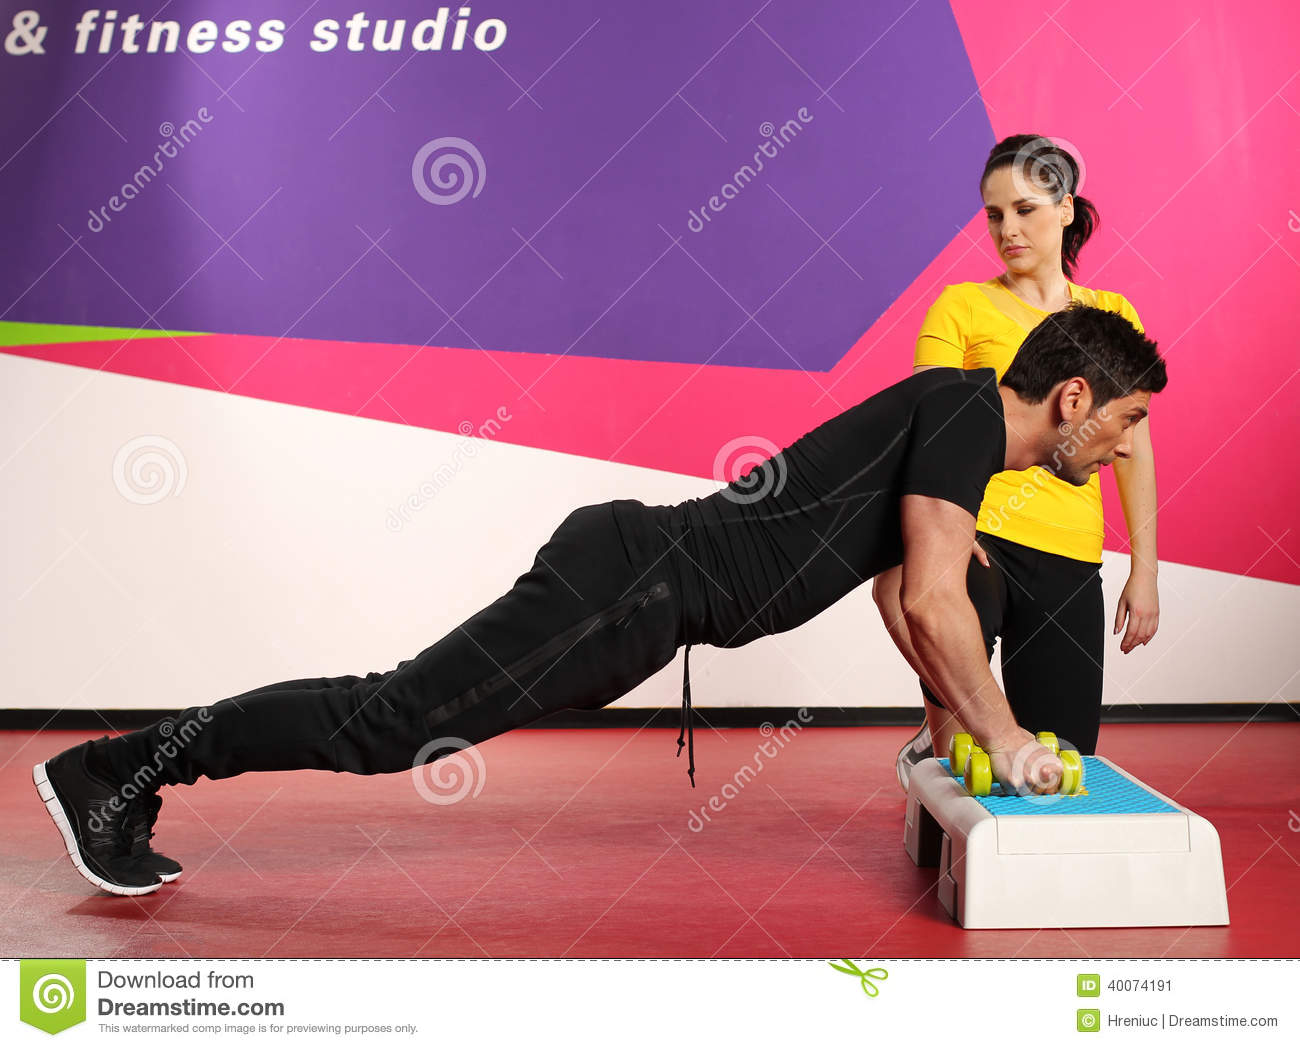 how to become a workout instructor